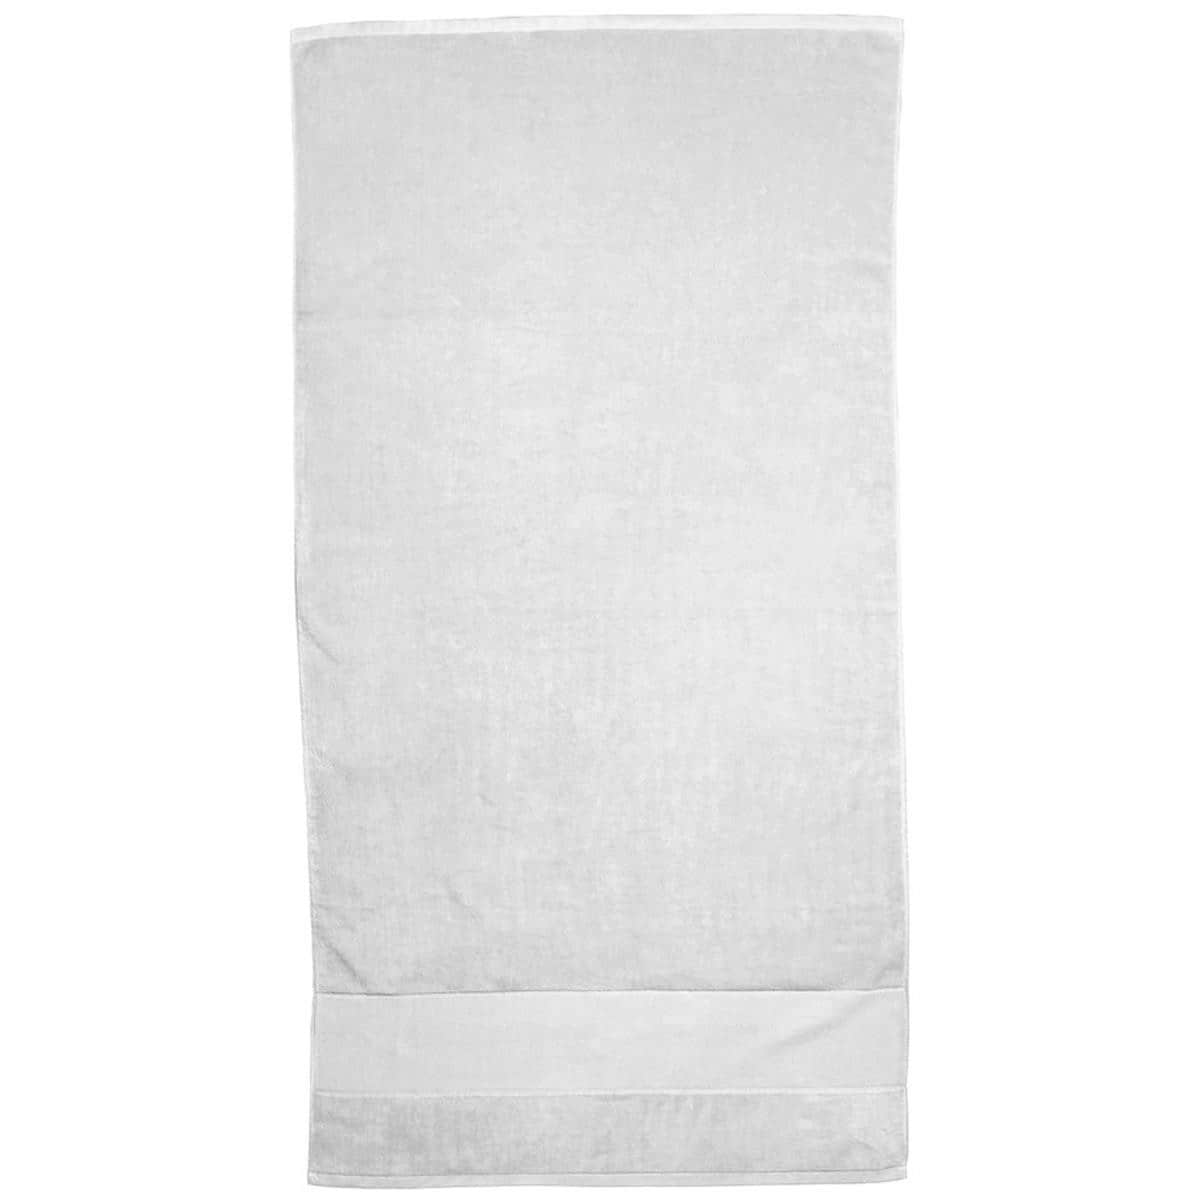 White Super Soft Touch Towel Custom Printed